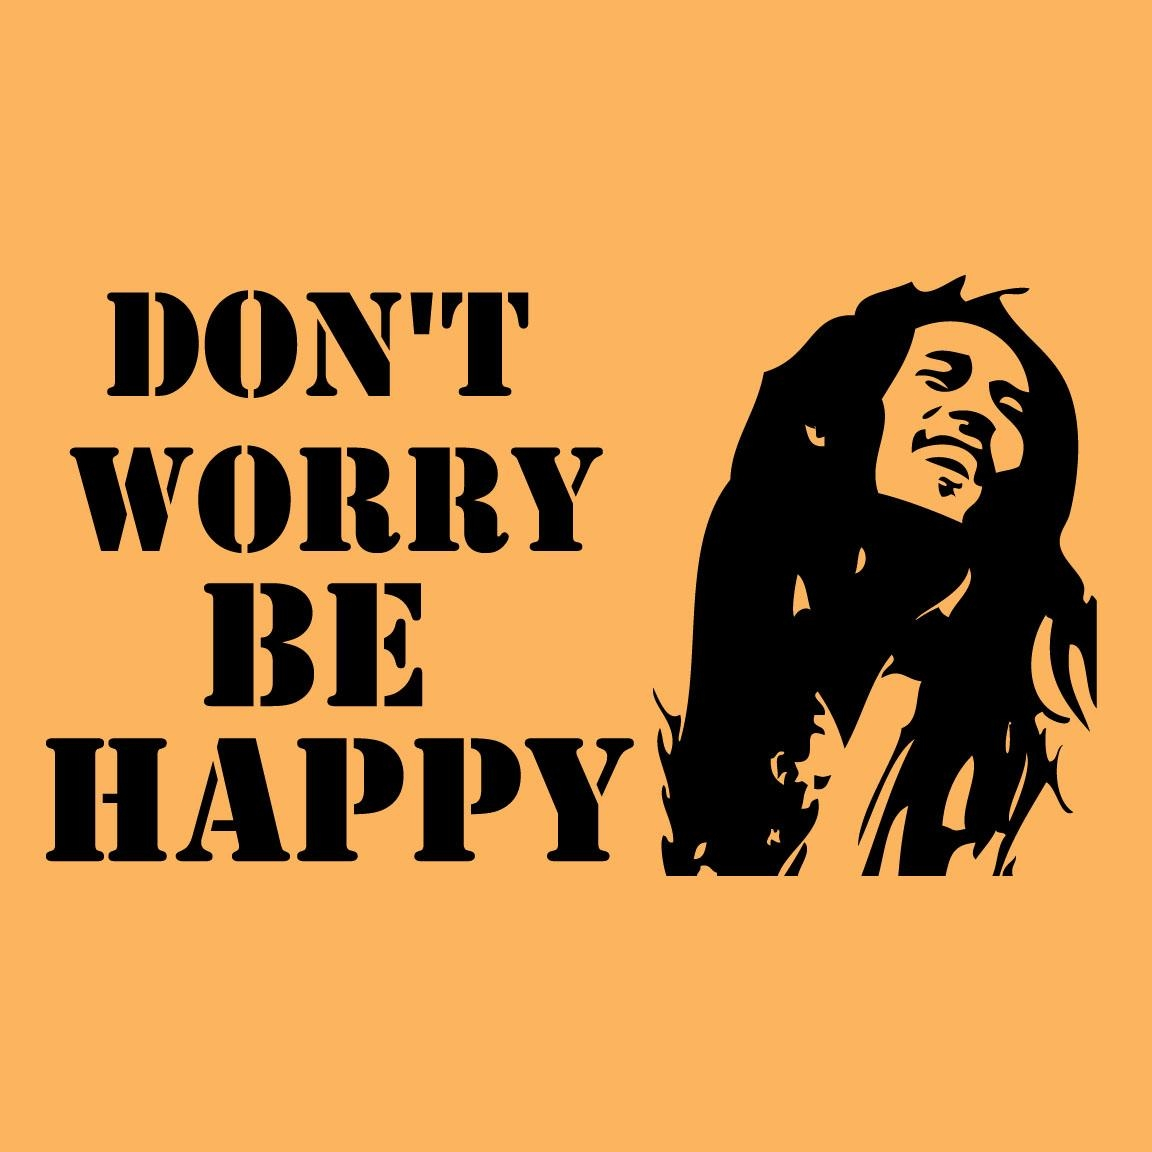 Marley Wall Decal  Wall Vinyl Sticker Easy To Apply! Intended For Bob Marley Wall Art (Image 15 of 20)